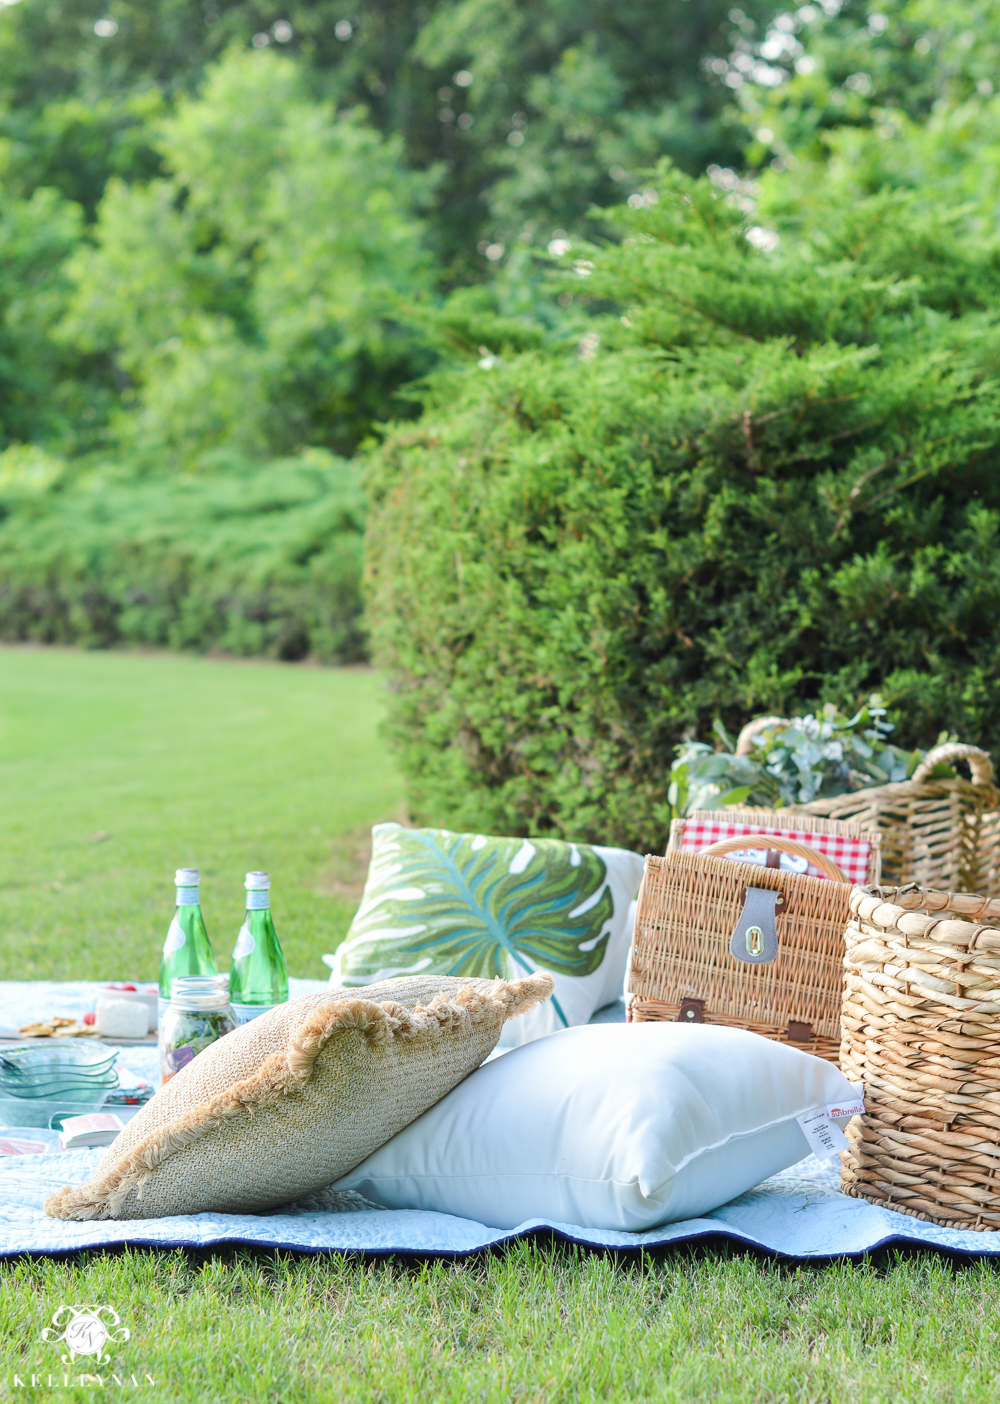 Picnic and Tailgate Ideas and Setup- summer date night